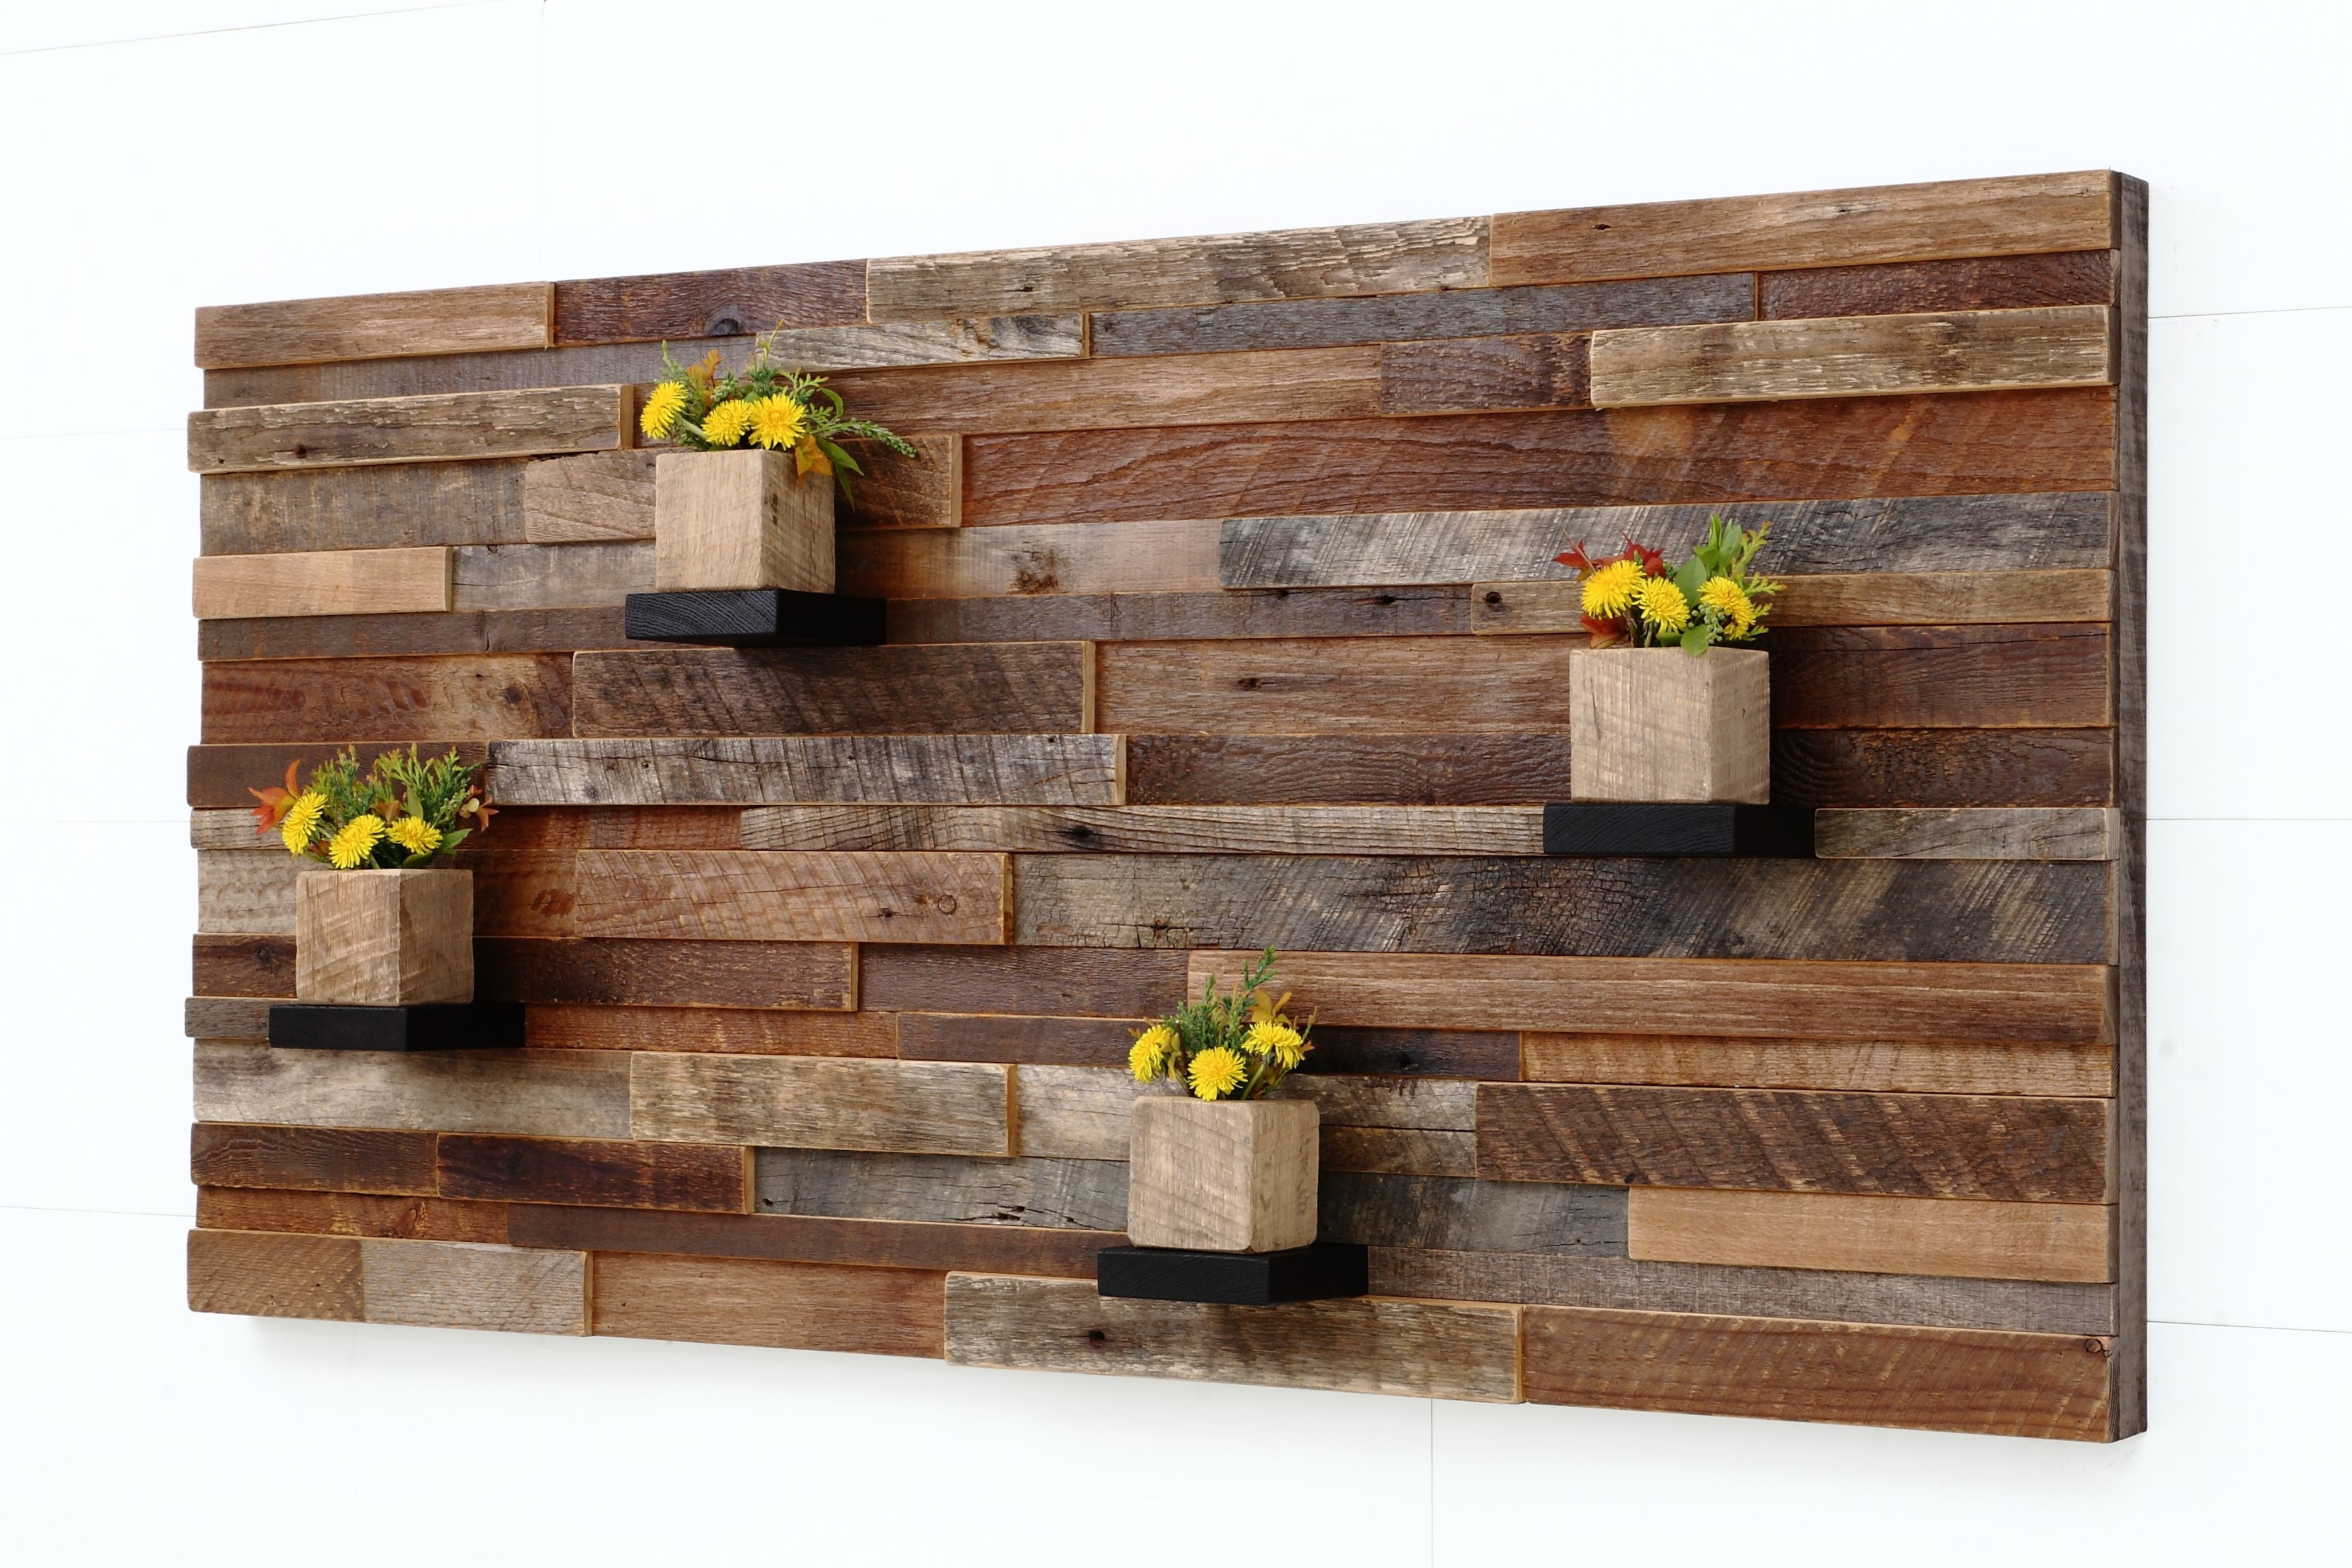 Handmade Wood Wall Art With Wood Shelves 48carpentercraig Regarding Most Recent Wooden Wall Accents (View 1 of 15)